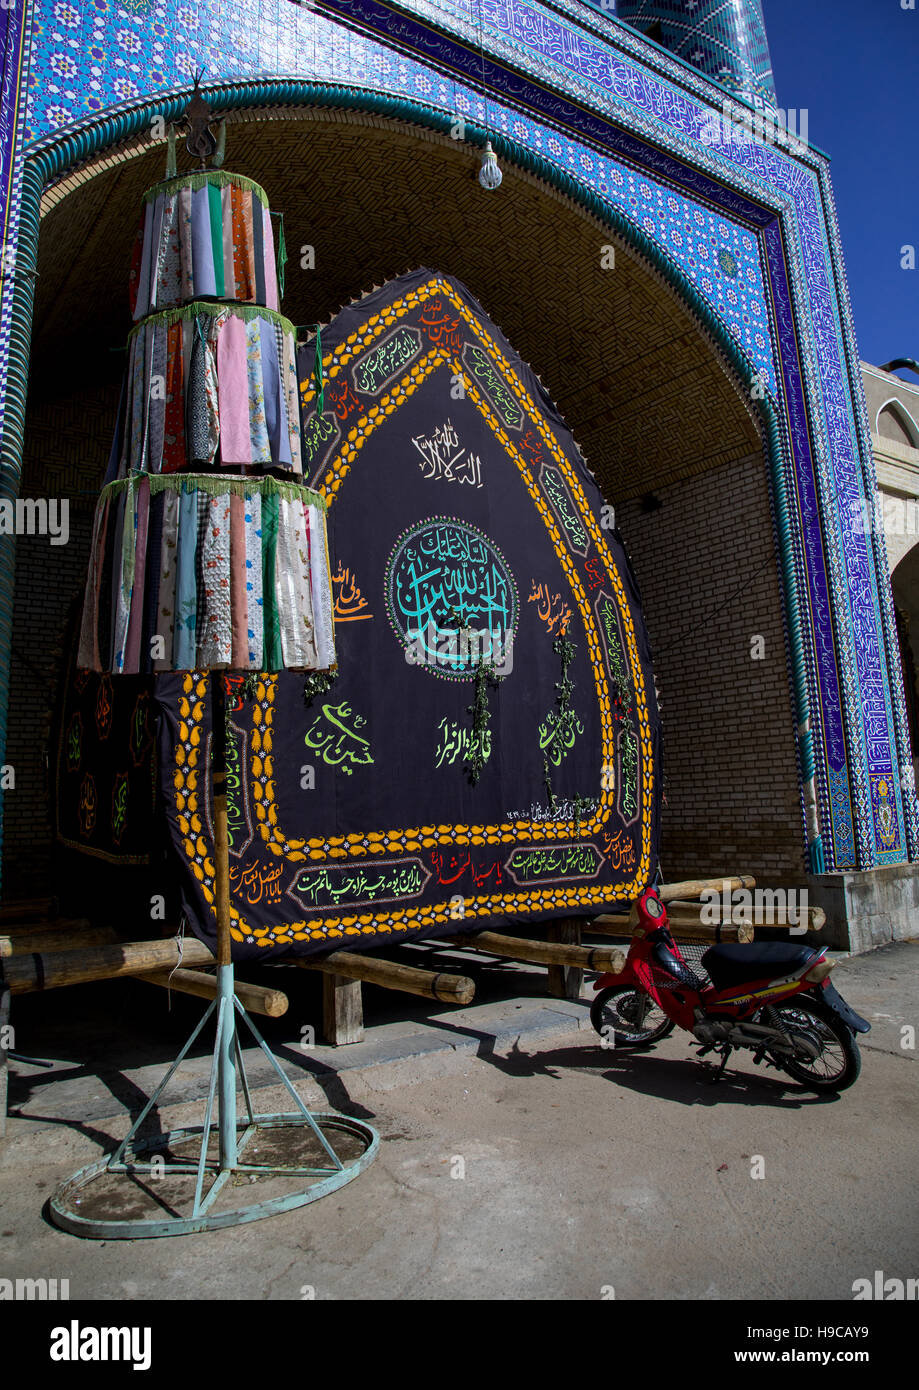 A nakhl and an alam made of clothes in front of a mosque during muharram to commemorate the martyrdom anniversary - Stock Image